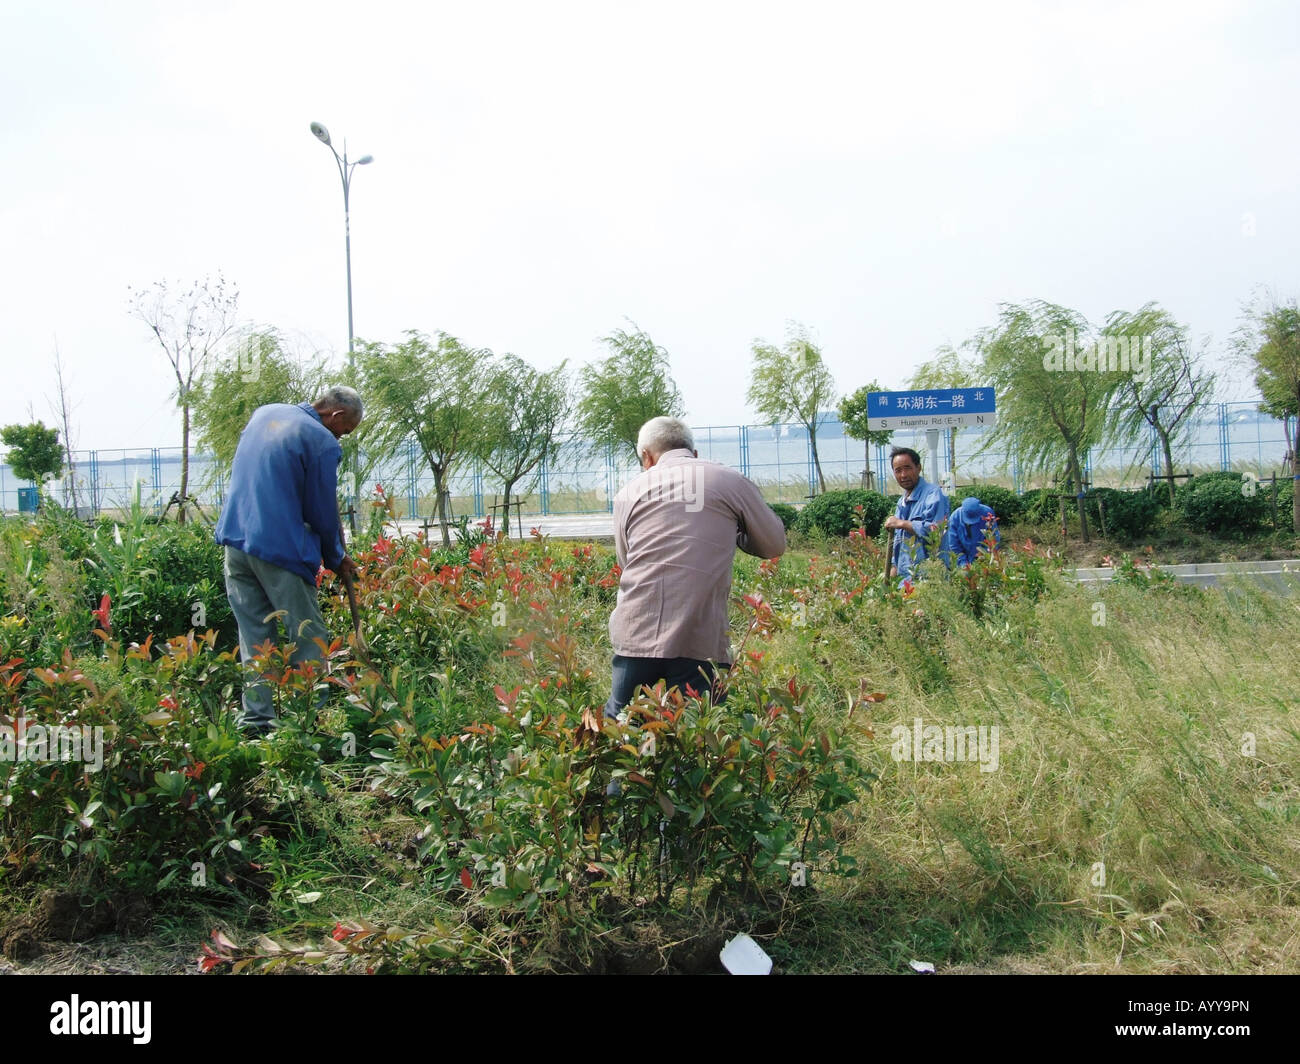 A group of gardeners in Lingang New Town near Shanghai China Stock Photo